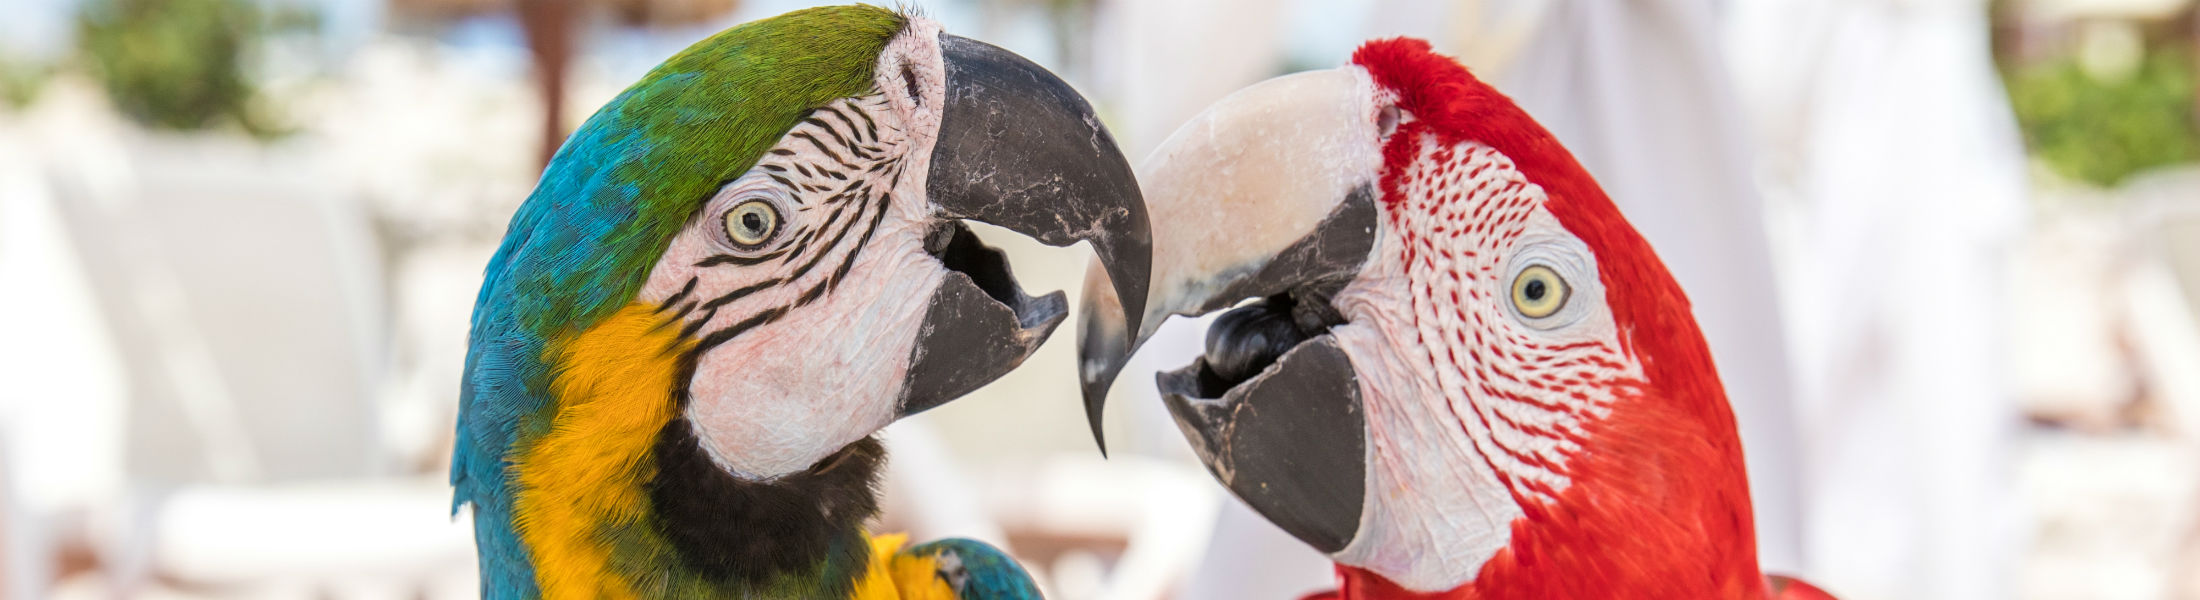 Macaw parrot couple